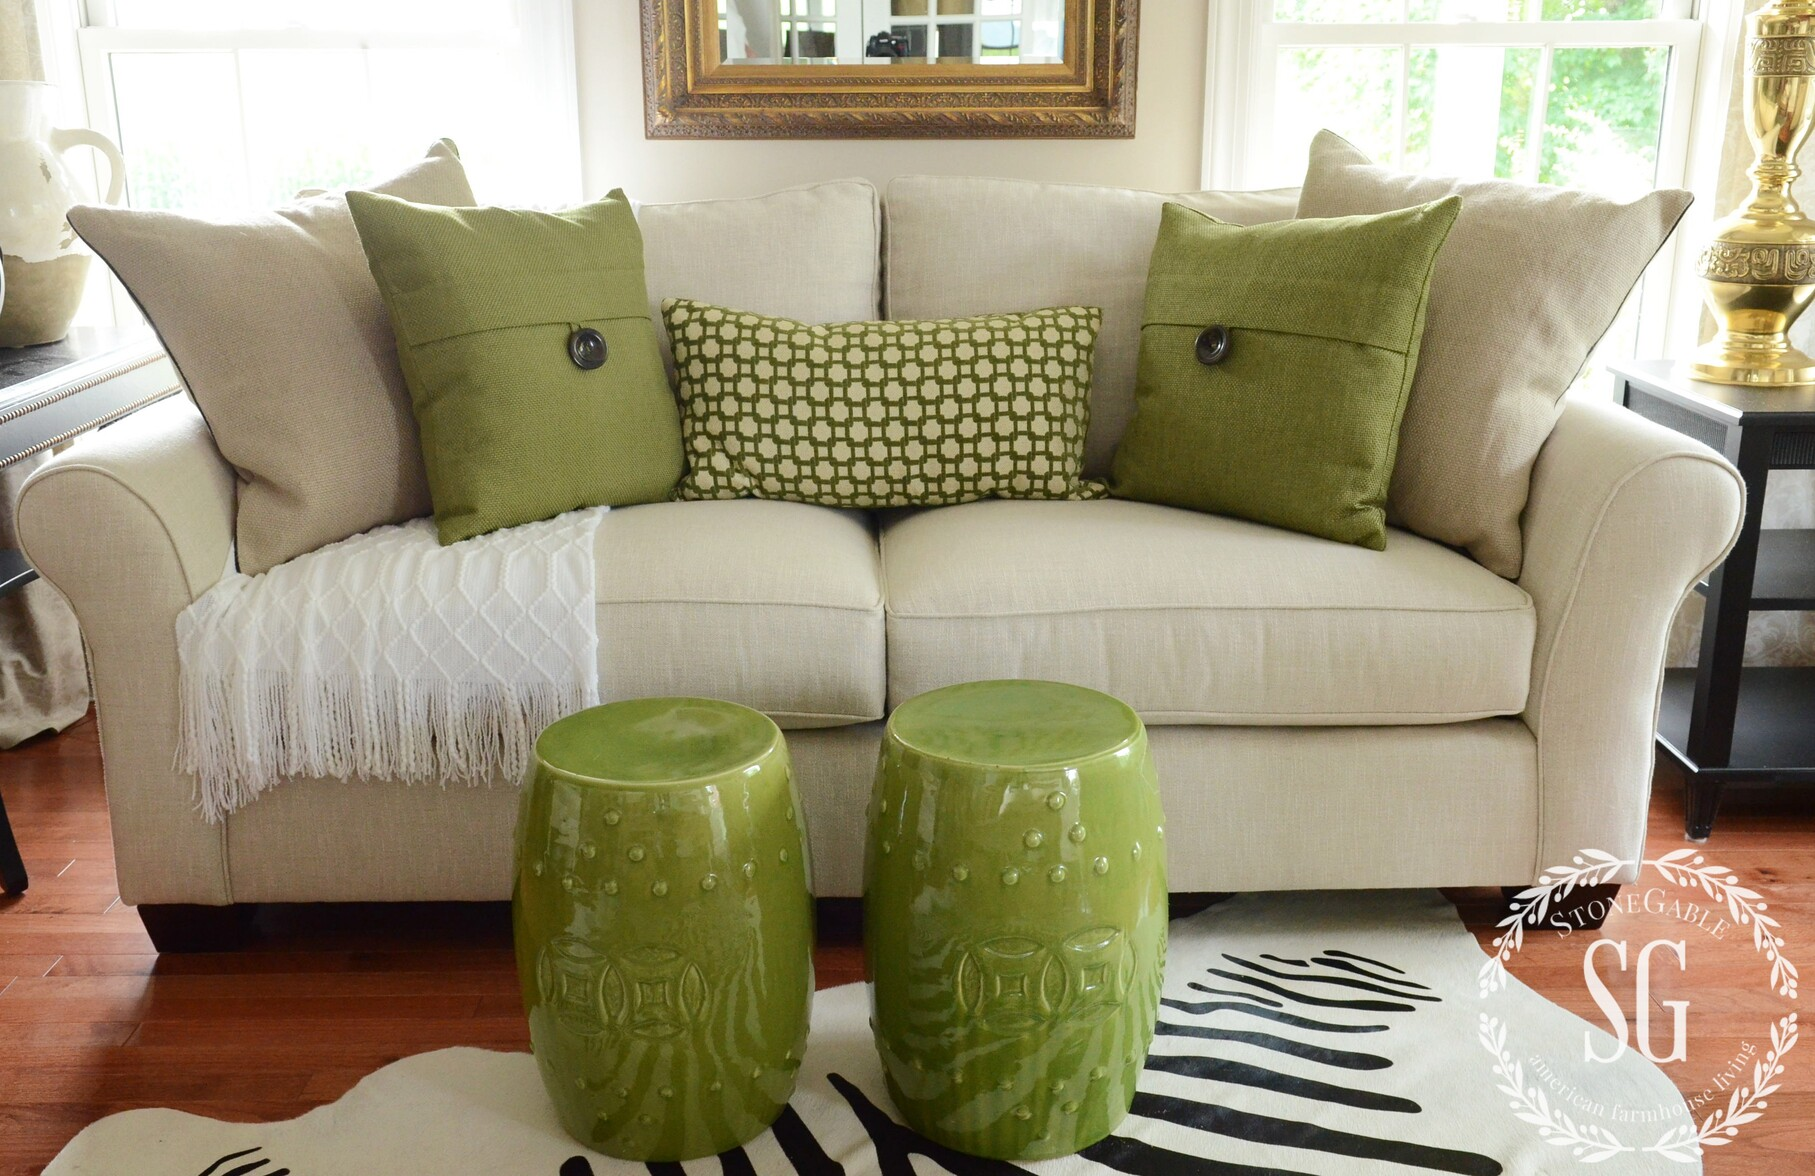 Throw Pillows For White Sofa : Green Throws For Sofas 100 Cotton Le Lime Green Giant 3 Or 4 Seater Sofa Throw - TheSofa